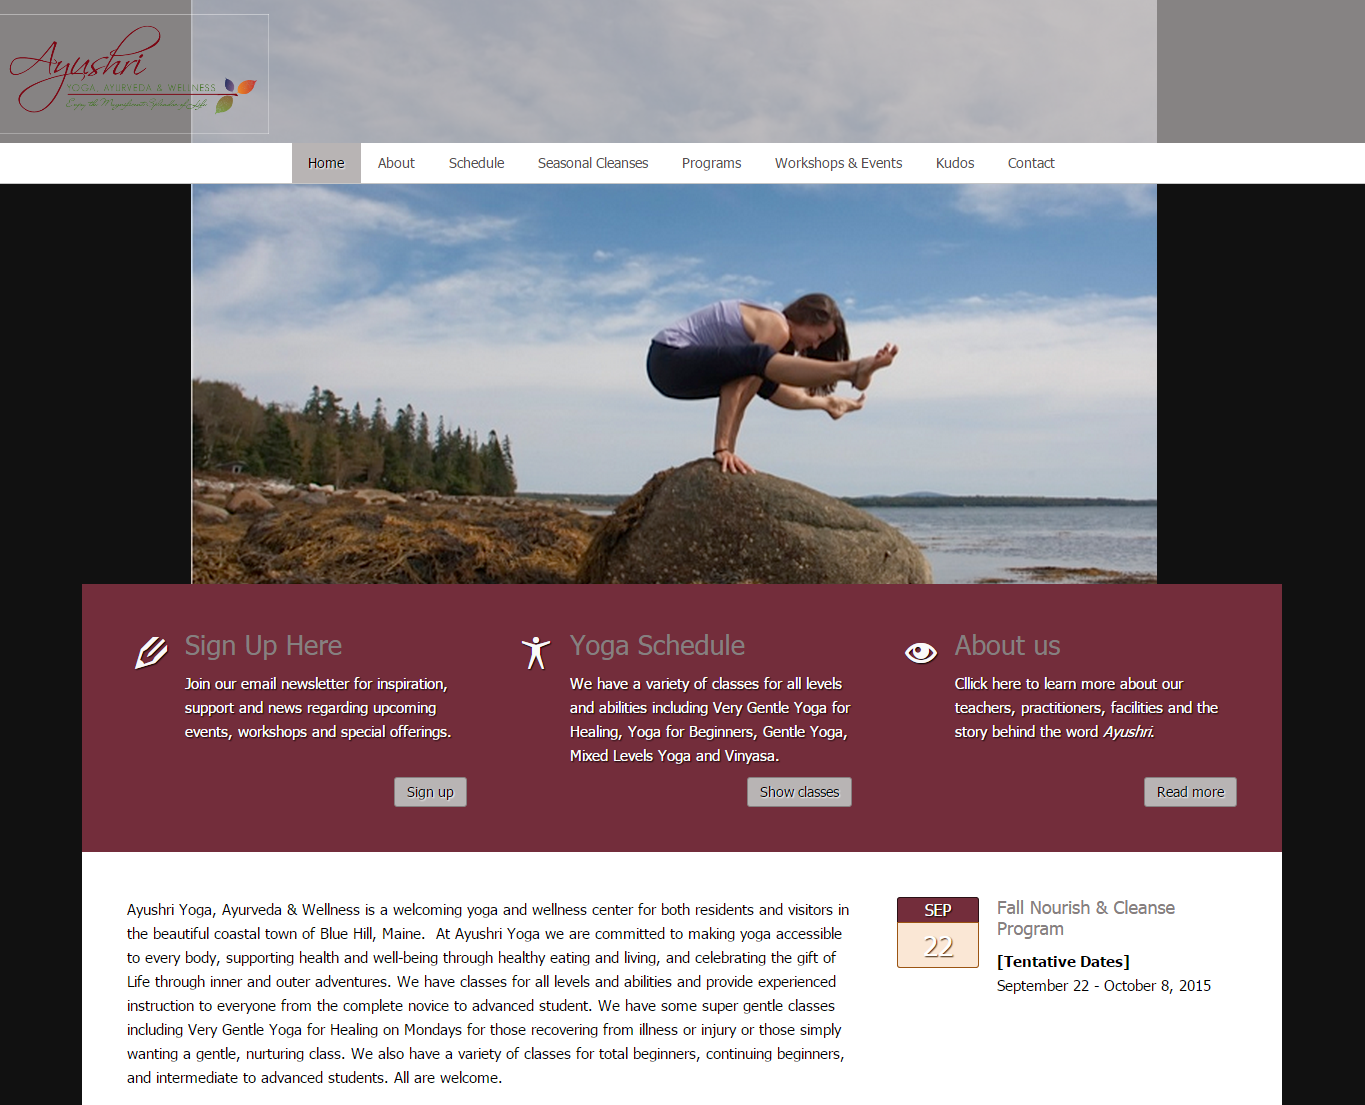 porfolio website redesign